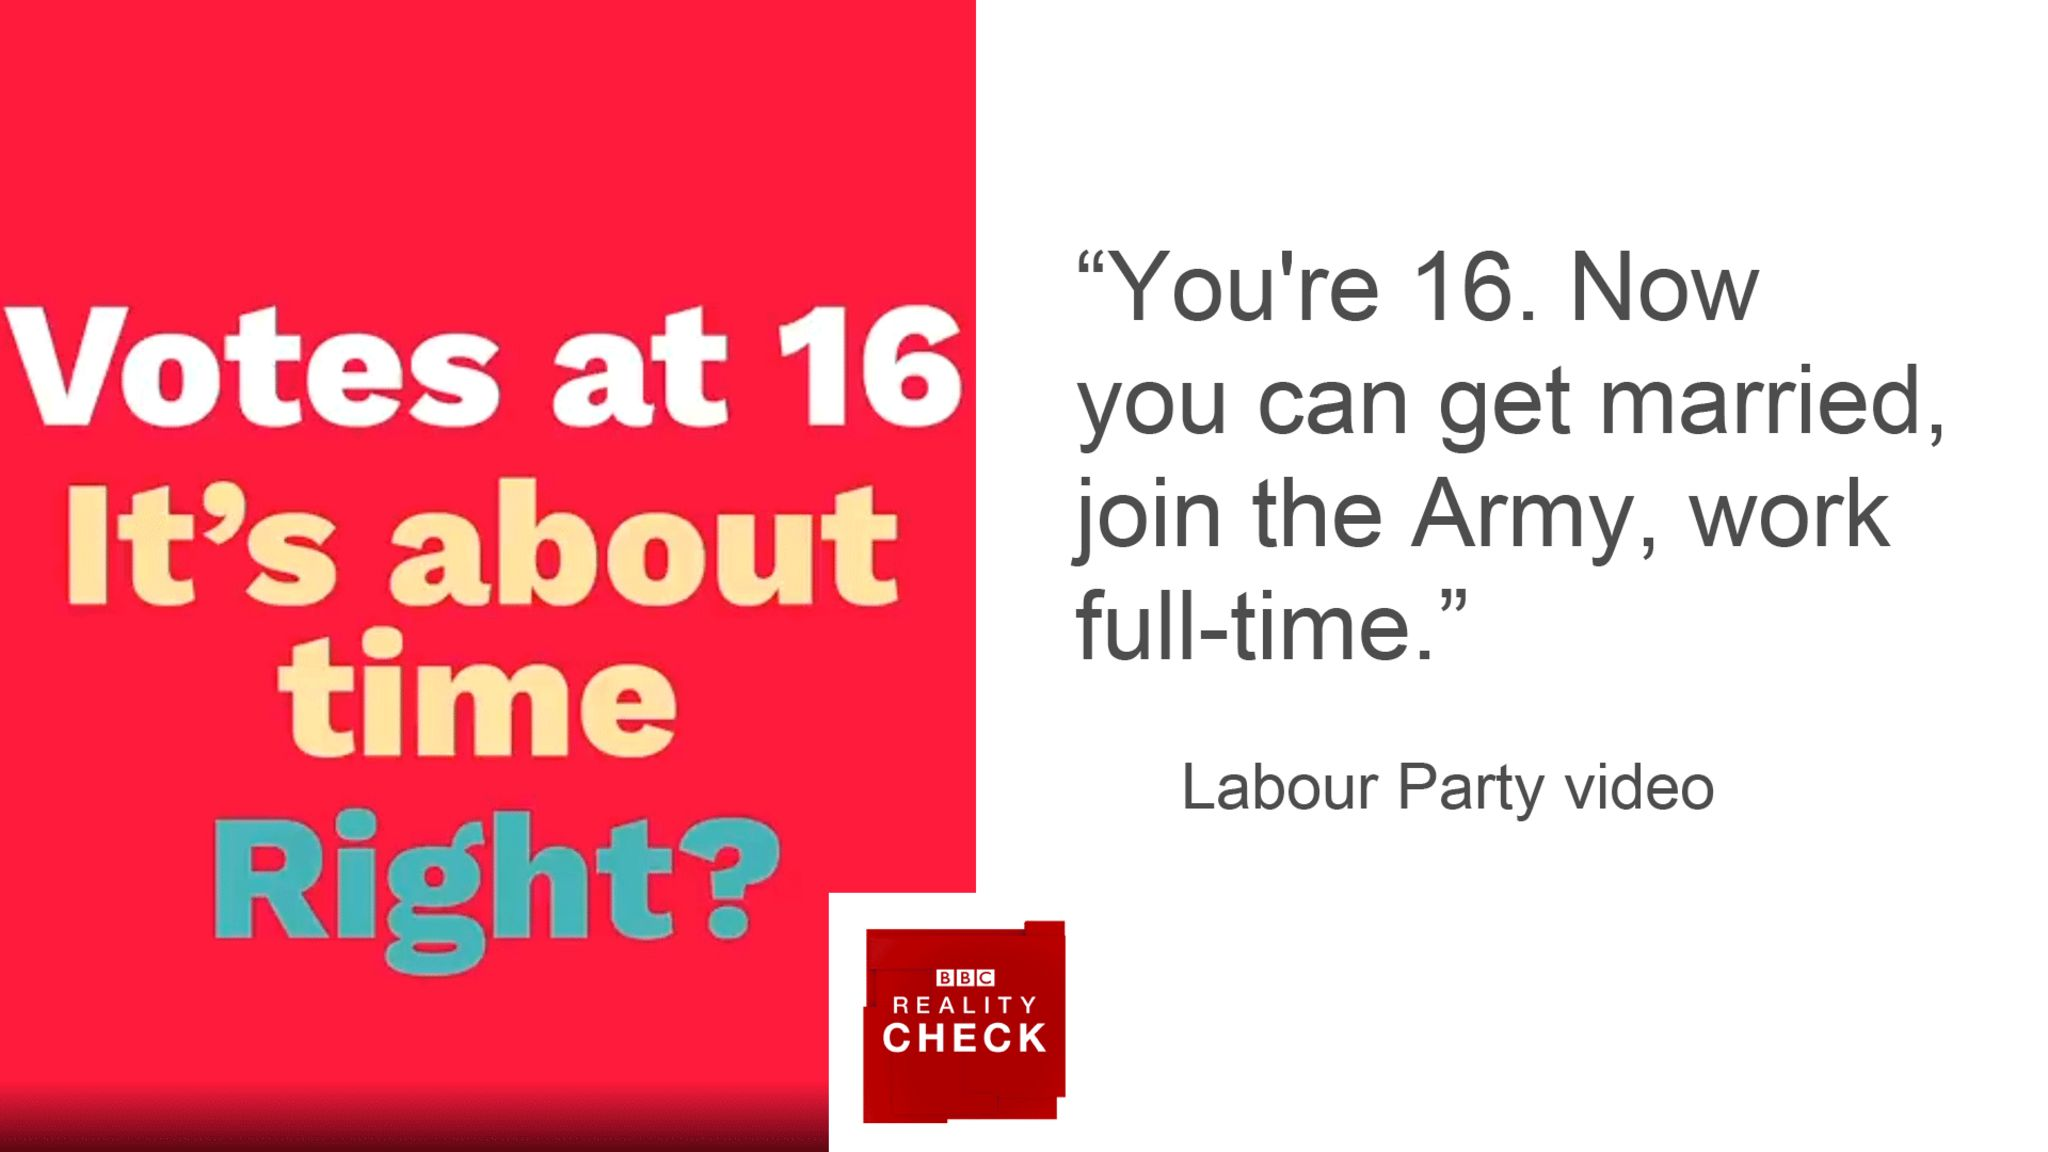 Labour Party campaign: You're 16. Now you can get married, join the Army, work full-time.